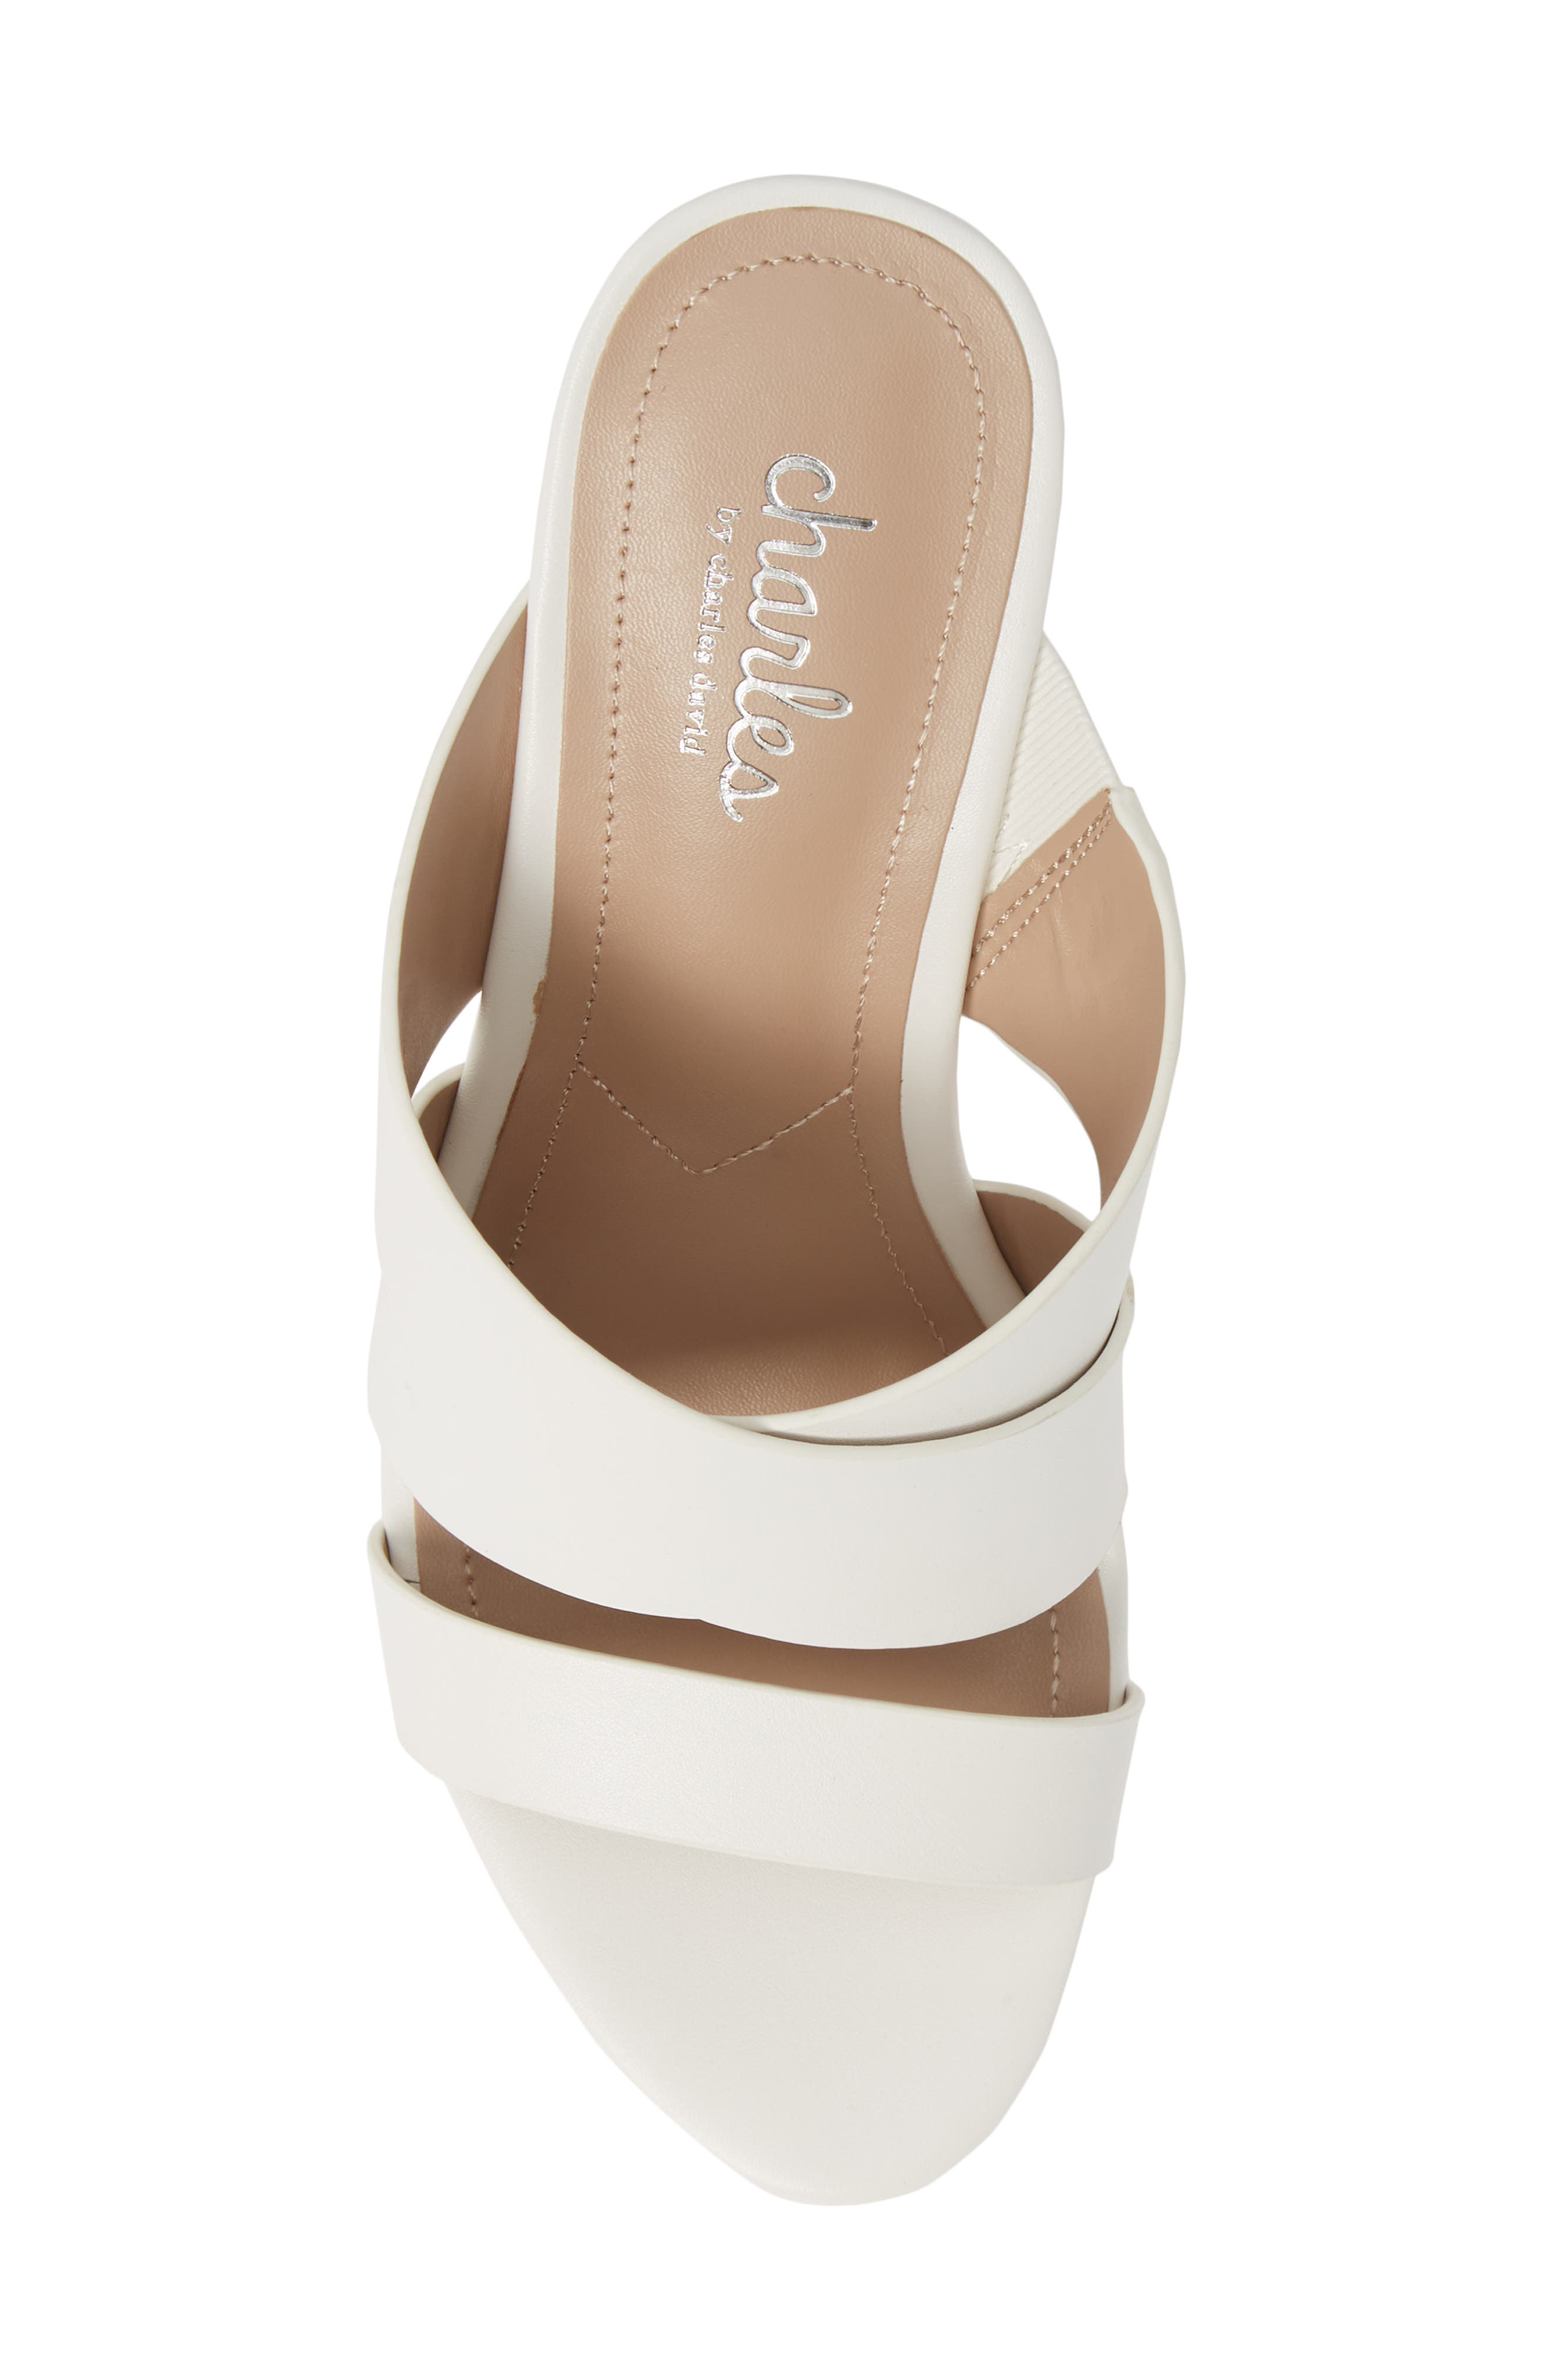 CHARLES BY CHARLES DAVID, Leslie Wedge Sandal, Alternate thumbnail 5, color, WHITE FAUX LEATHER